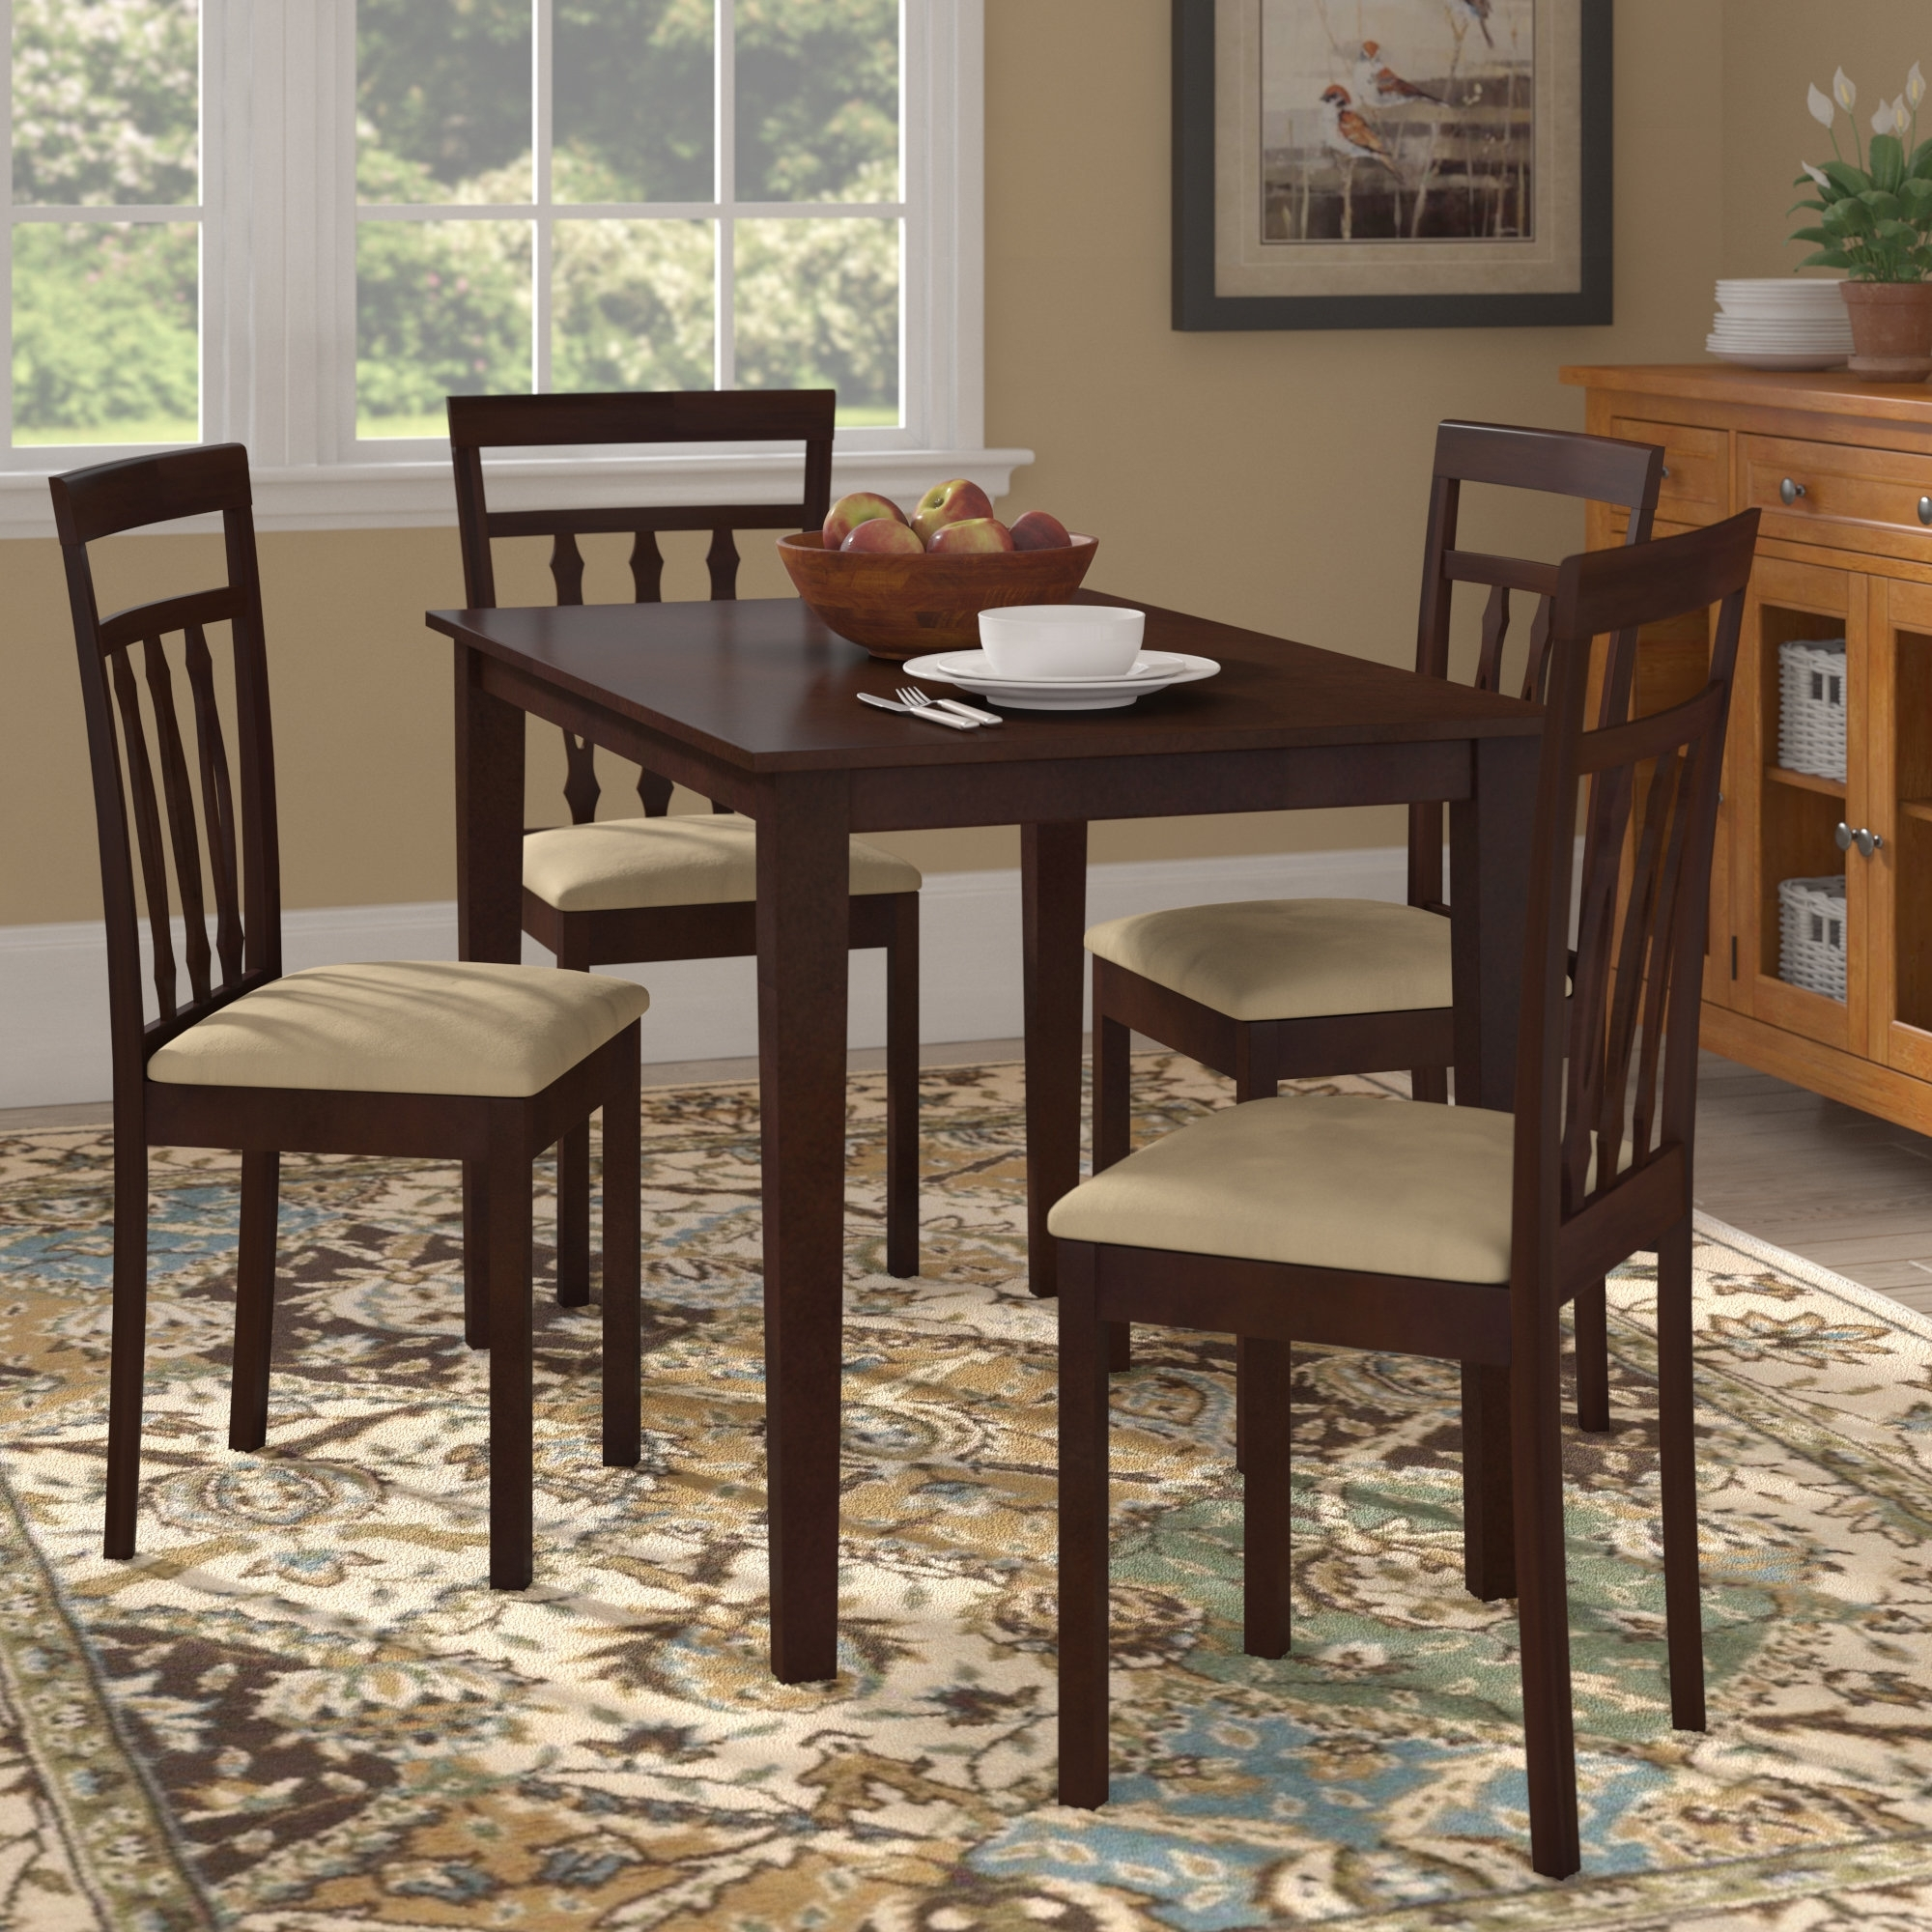 Hyland 5 Piece Counter Sets With Bench intended for Popular August Grove Vivien 5 Piece Dining Set & Reviews